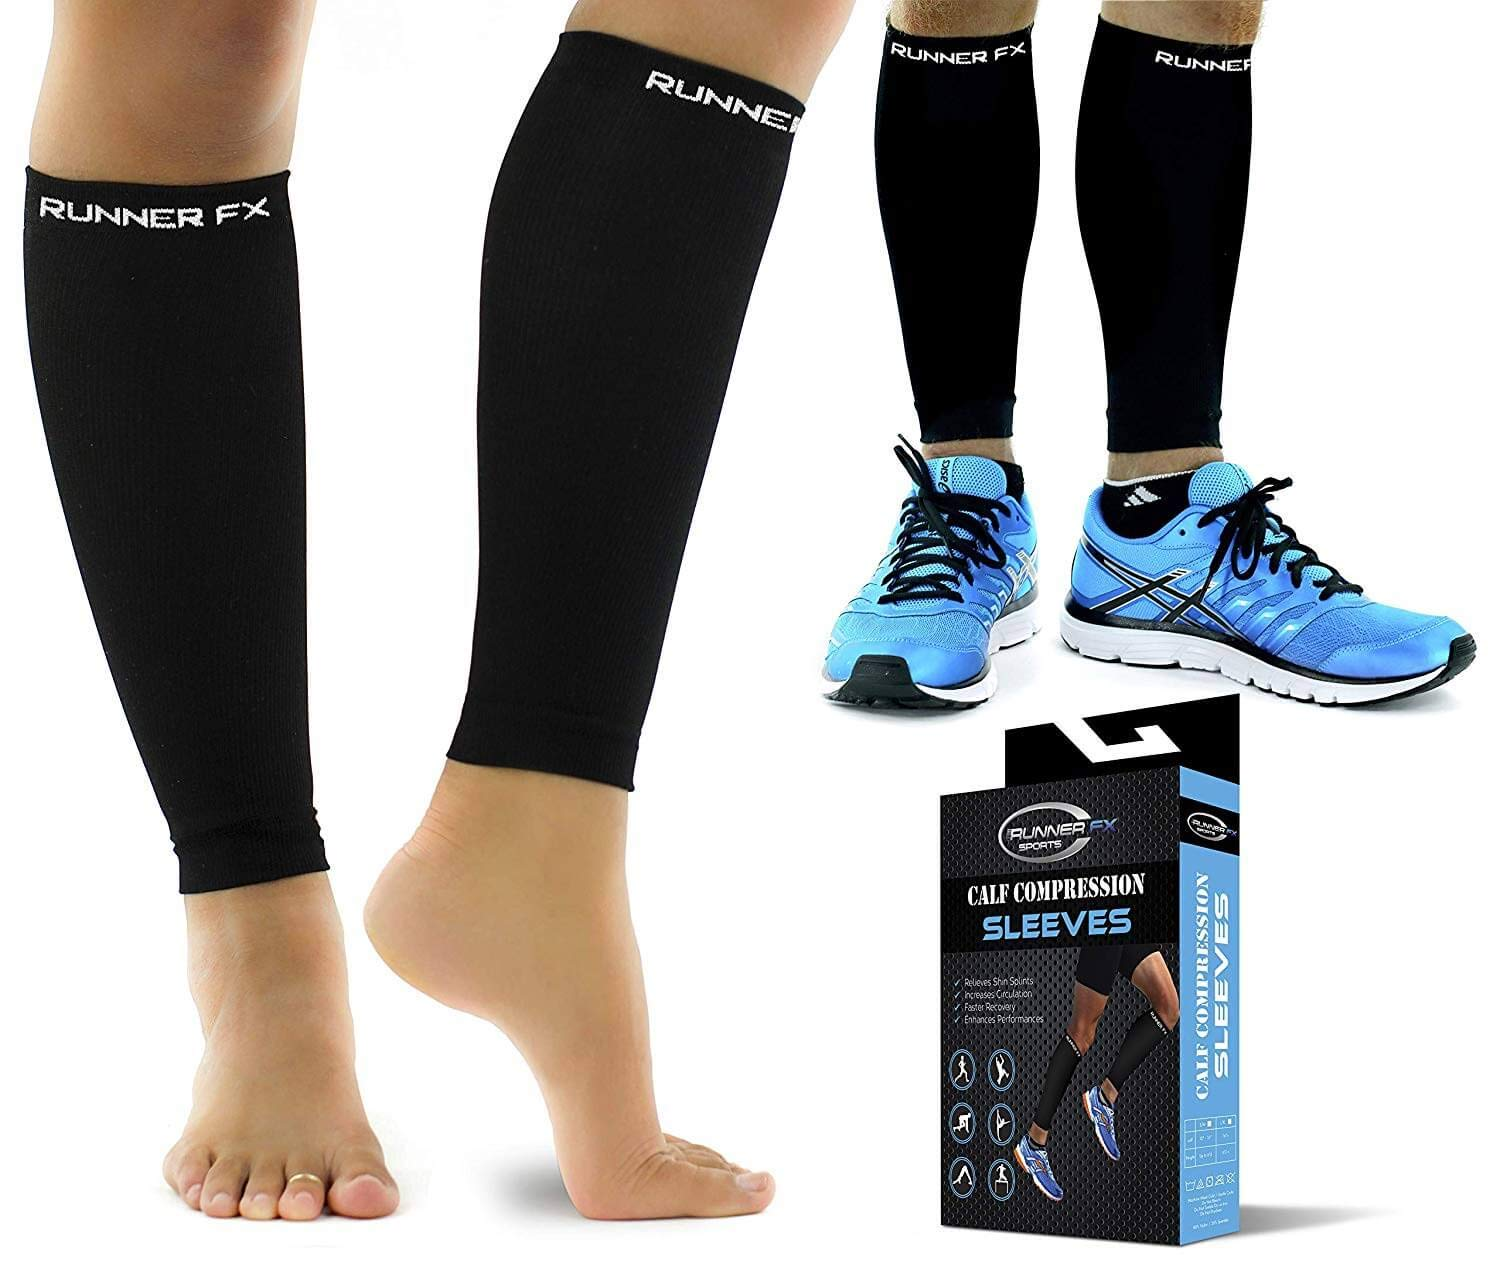 Pro Calf Compression Sleeve Men and Womens (20-30mmHg) - Shin Splint Leg Compression Sleeve for Instant Leg Pain Relief, Circulation, Recovery Socks - Compression Sleeves for Runners, Cramps by RUNNER FX SPORTS